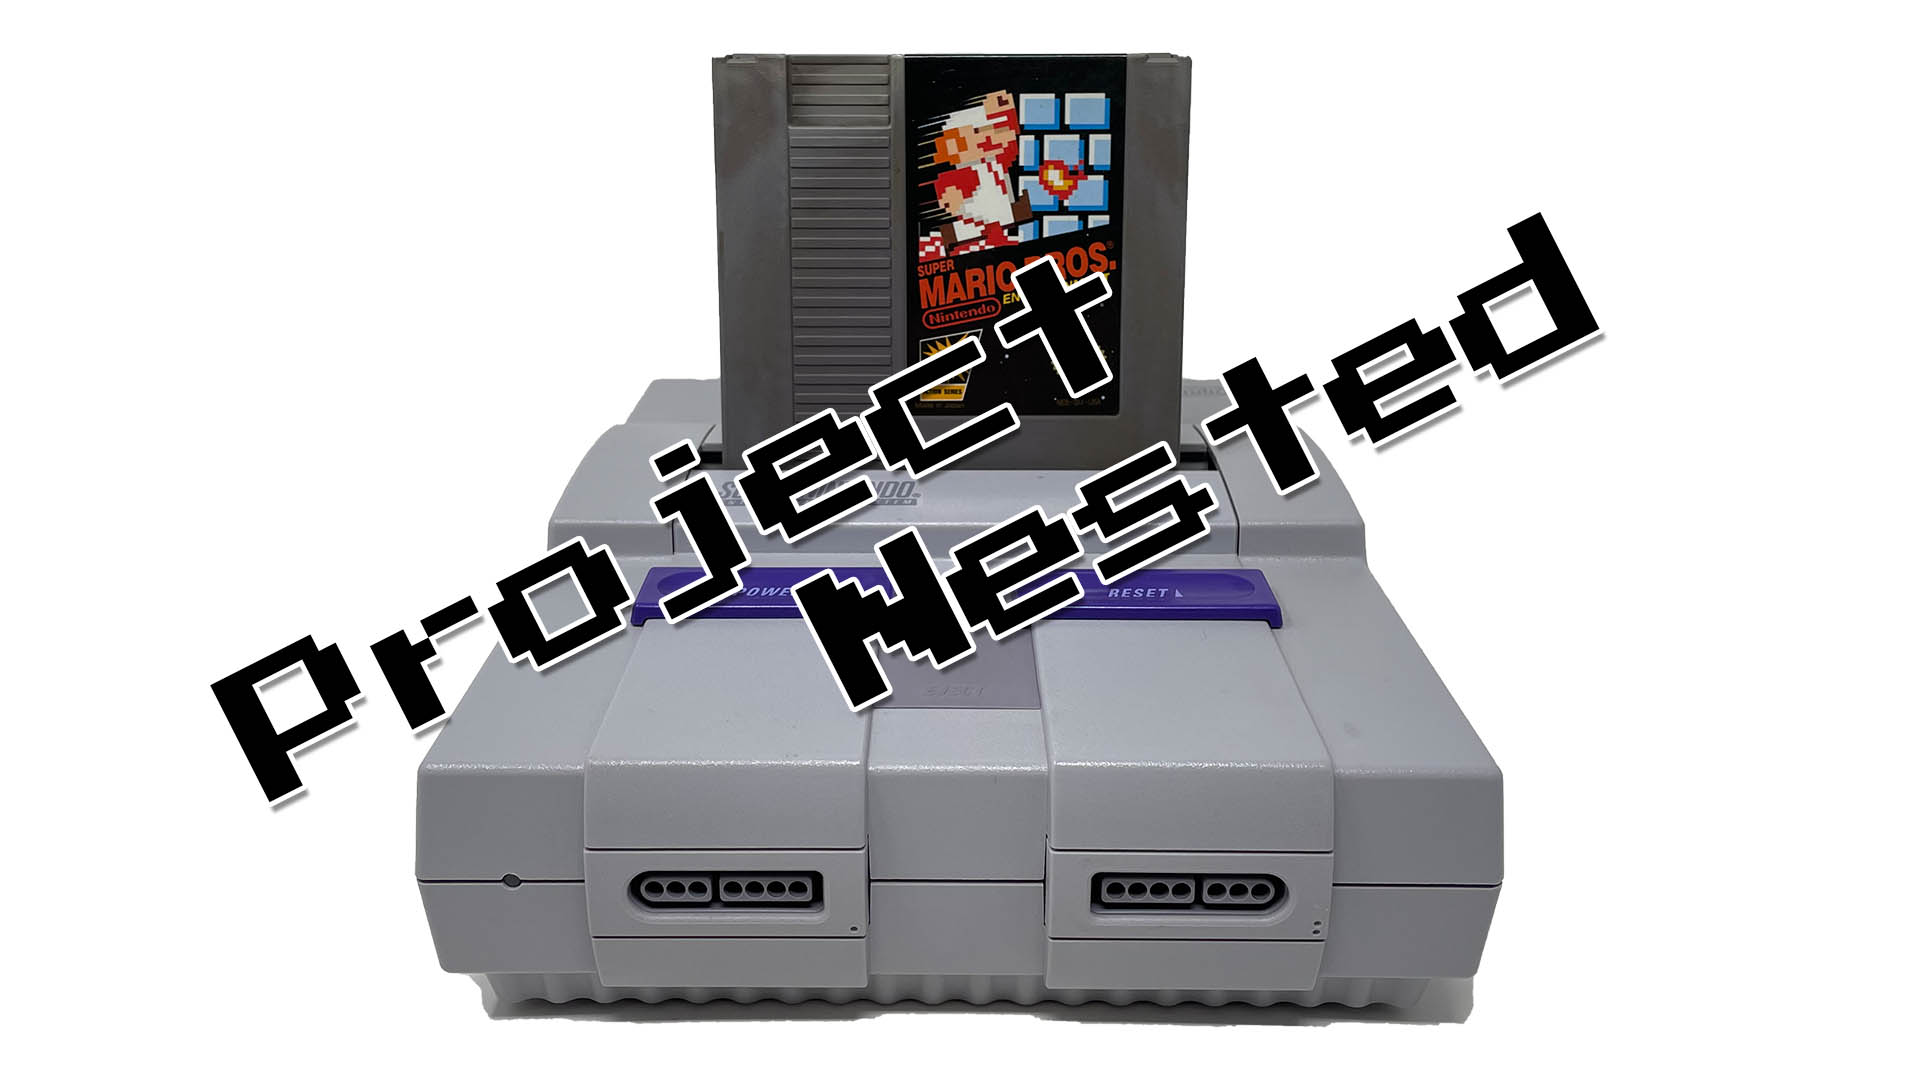 Project-Nested:  Play NES games on SNES